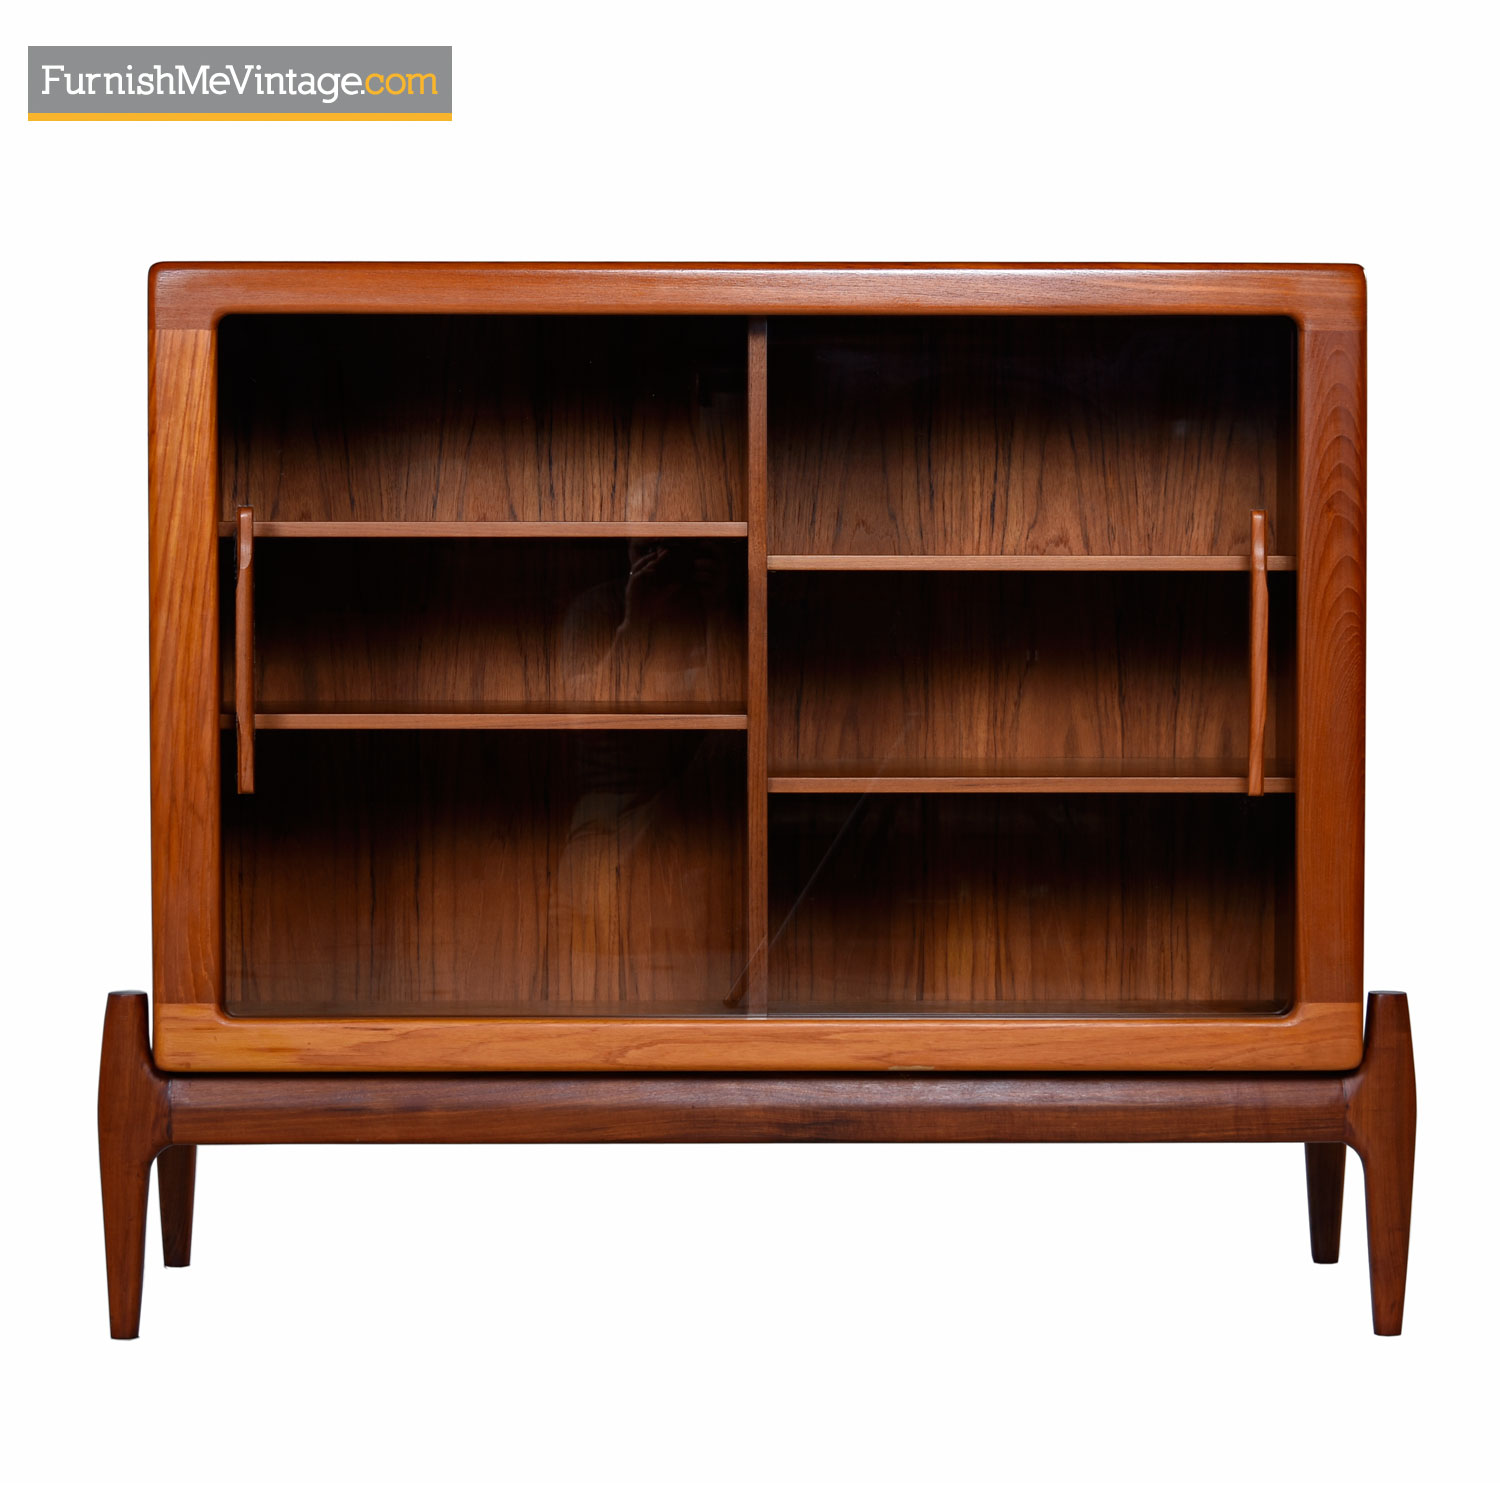 Danish Modern Sliding Glass Door Hutch Cabinet Bookcase